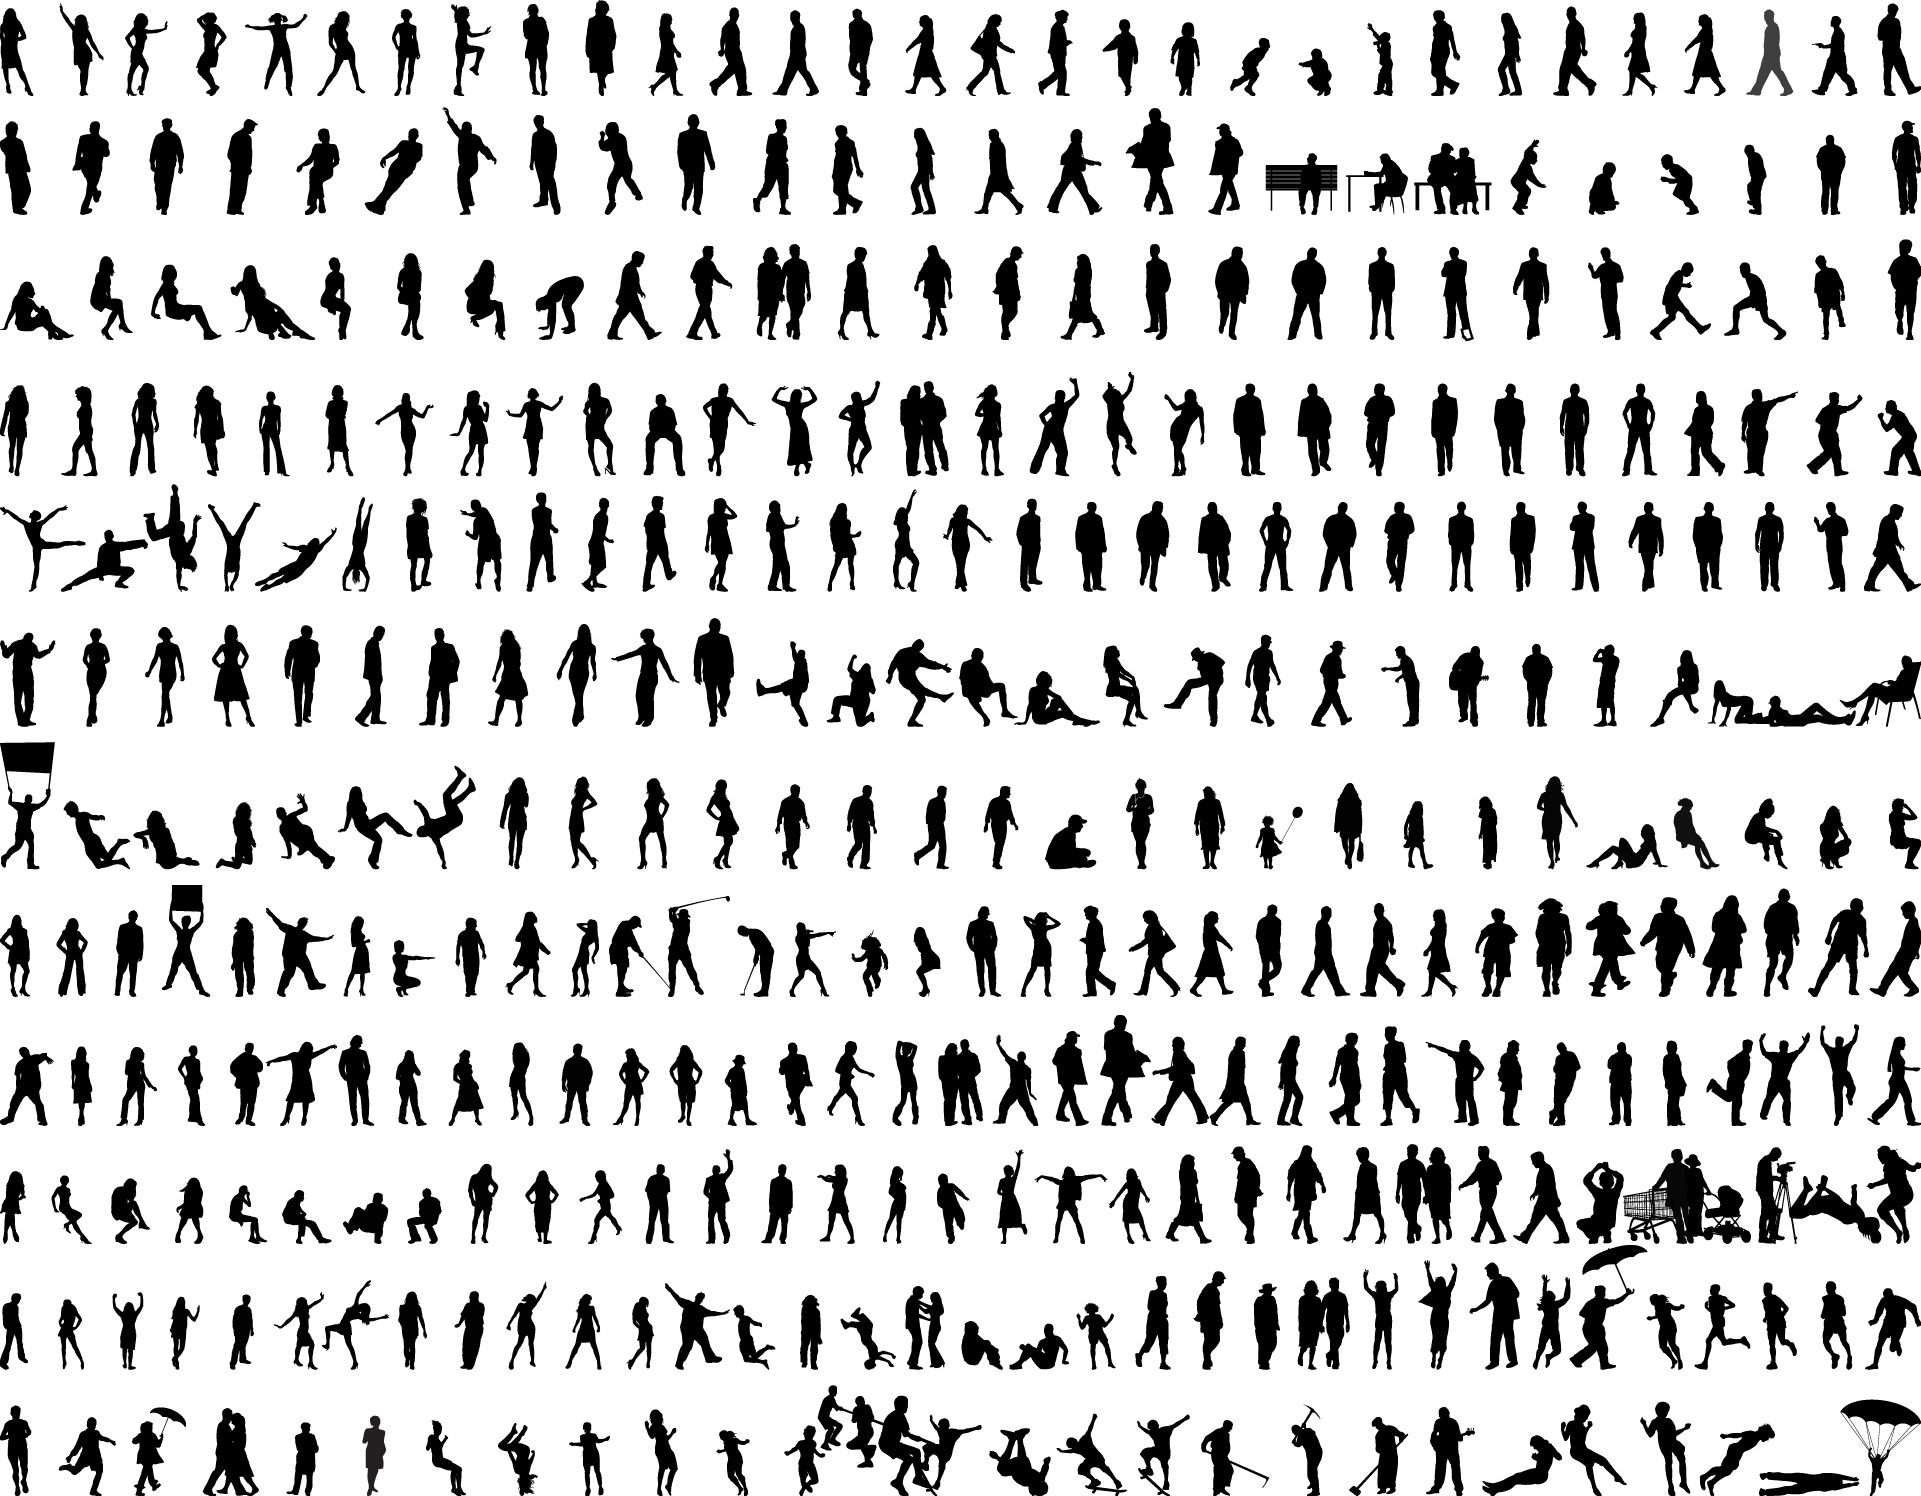 free clipart images people messy church pinterest free clipart rh pinterest co uk Printable Clip Art of People Free Clip Art Person